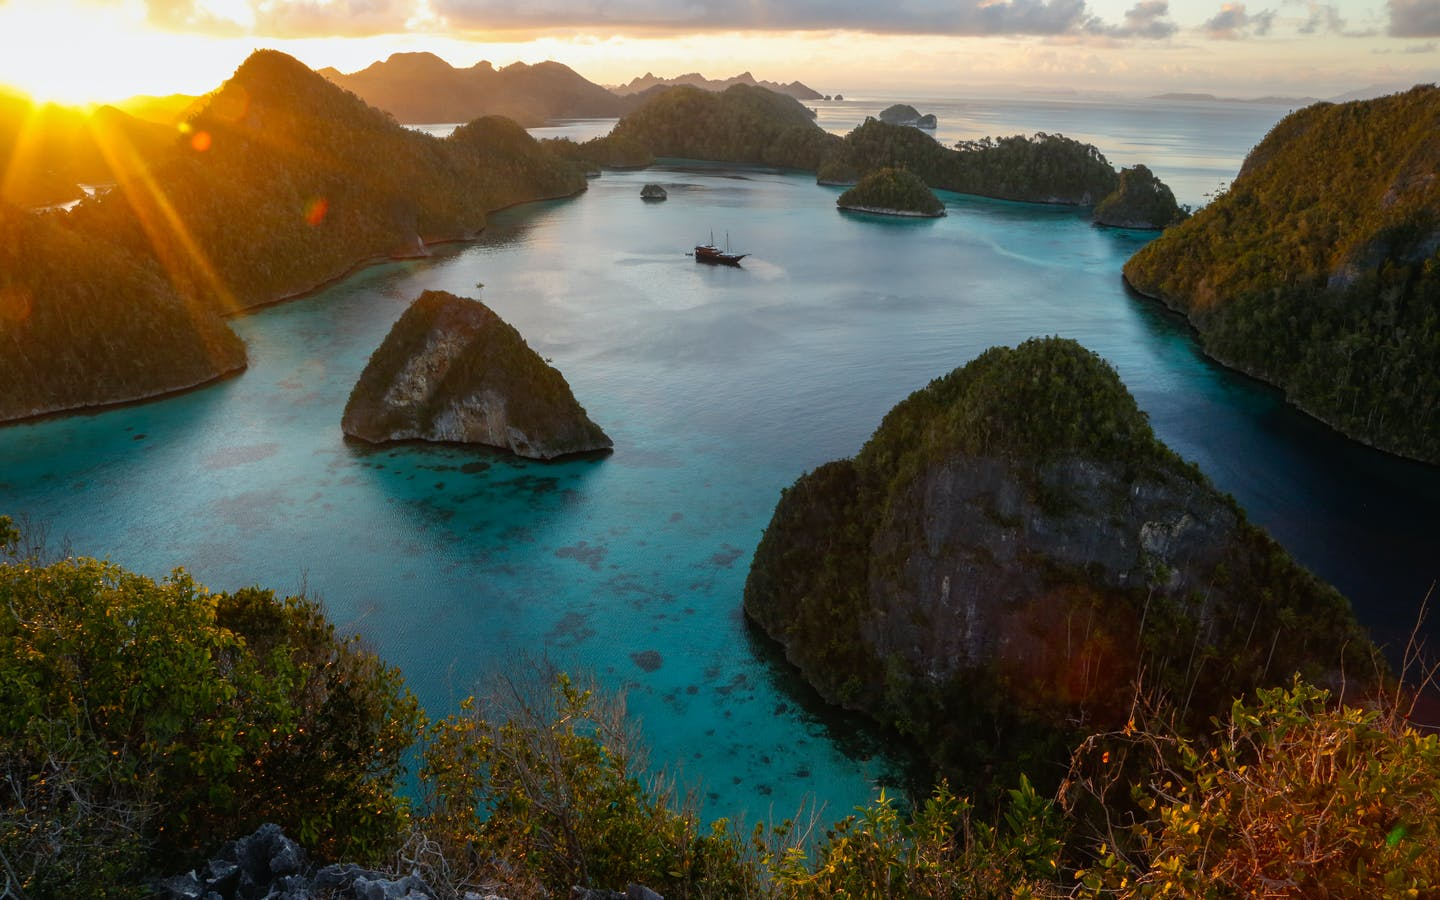 Beautiful view of Wayag Lagoon from the peak of one of the many islands in the Bird's Head Seascape, West Papua.